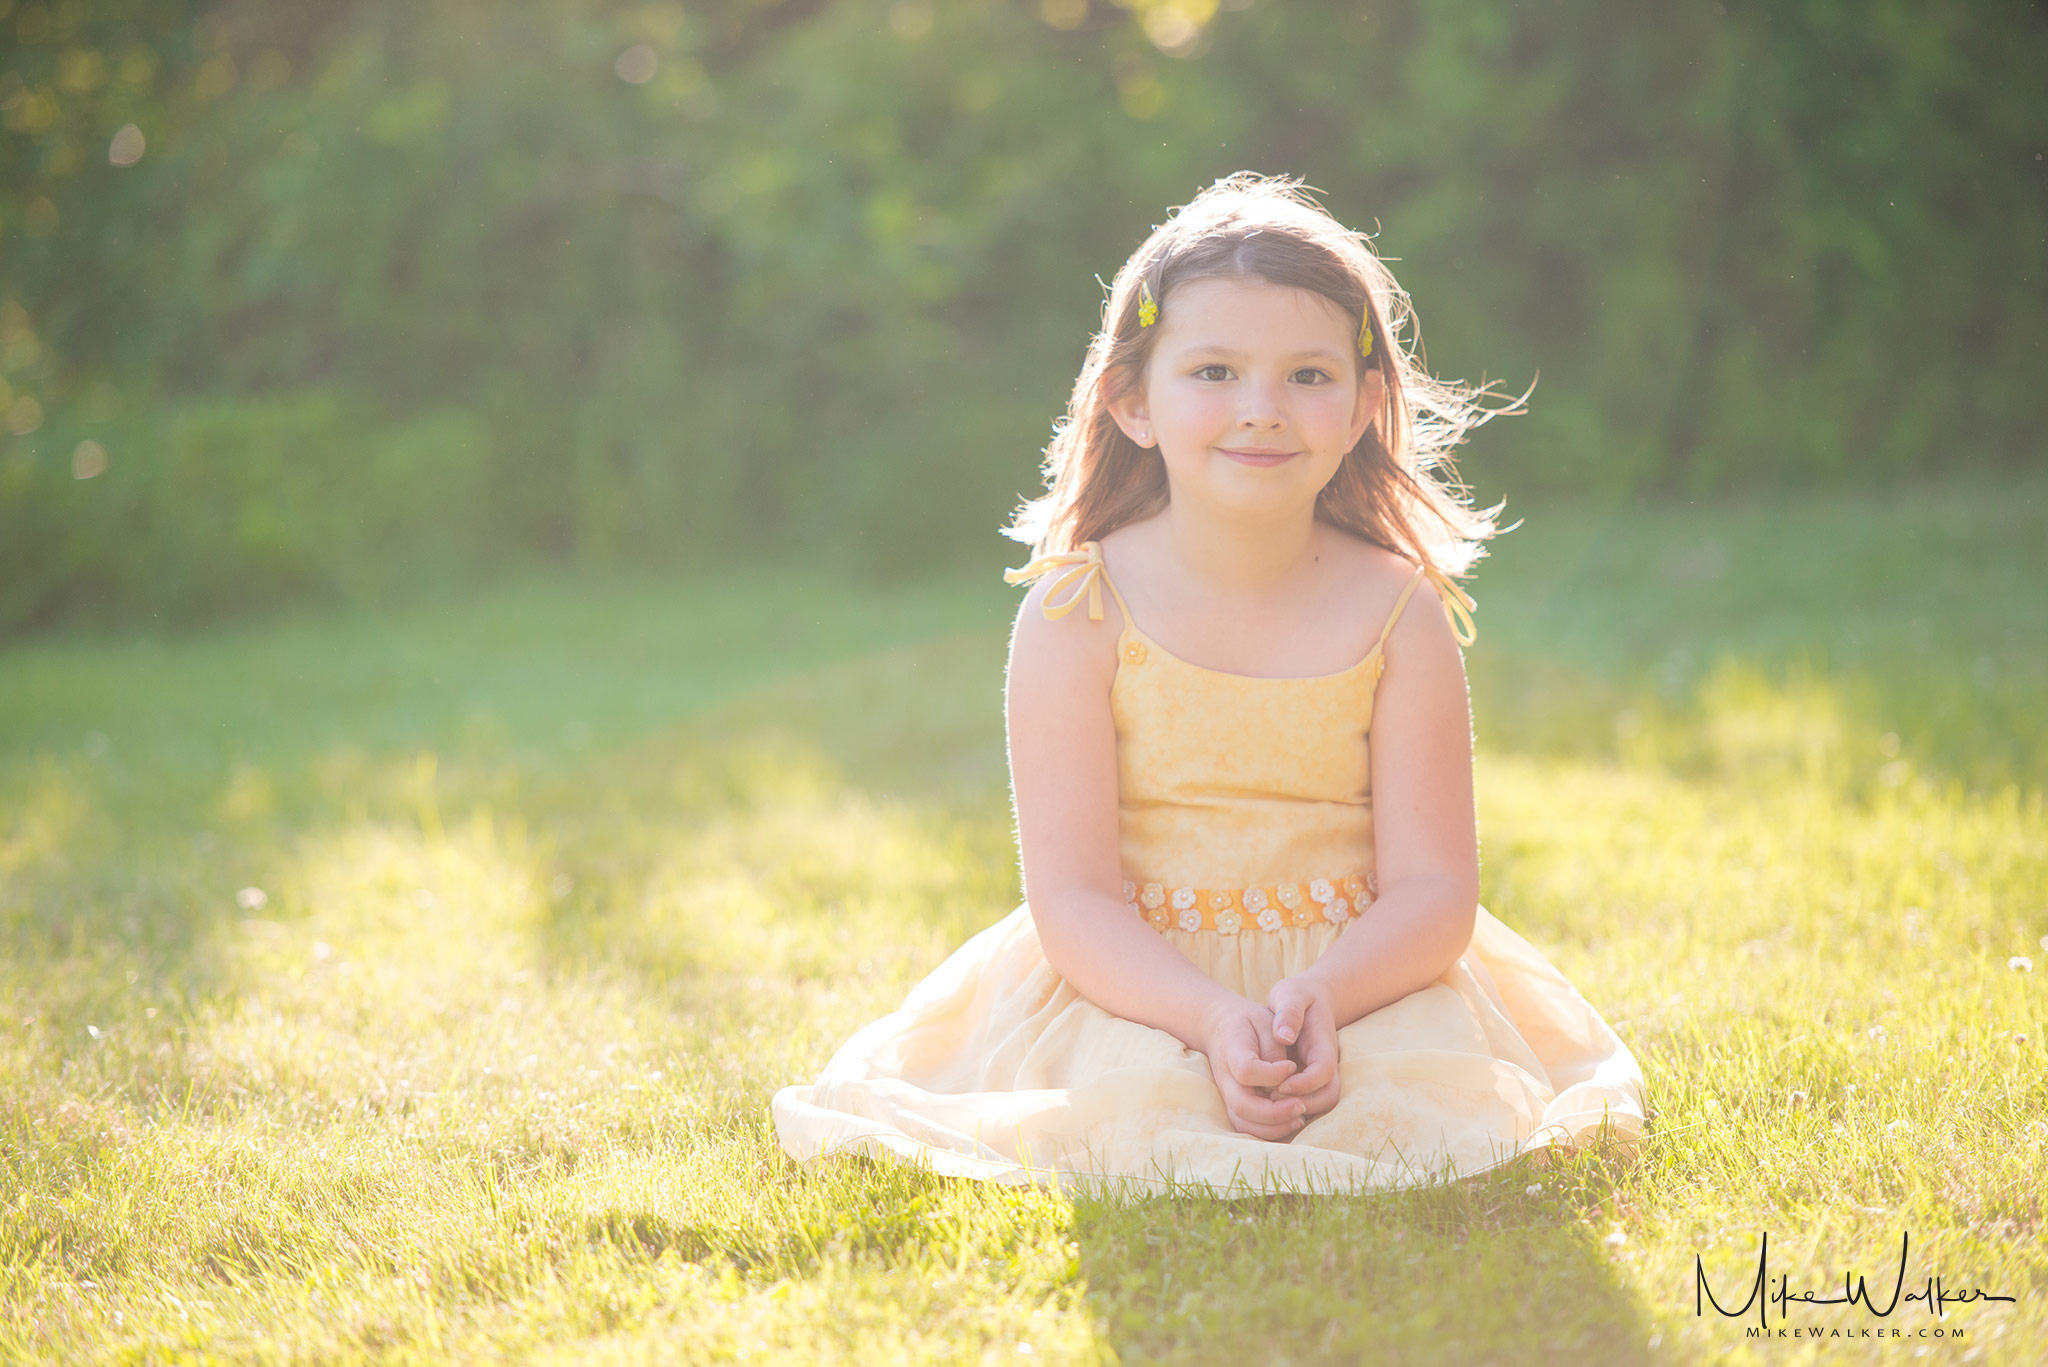 Young girl sitting in the grass in a sunny backyard. Family photography by Mike Walker.